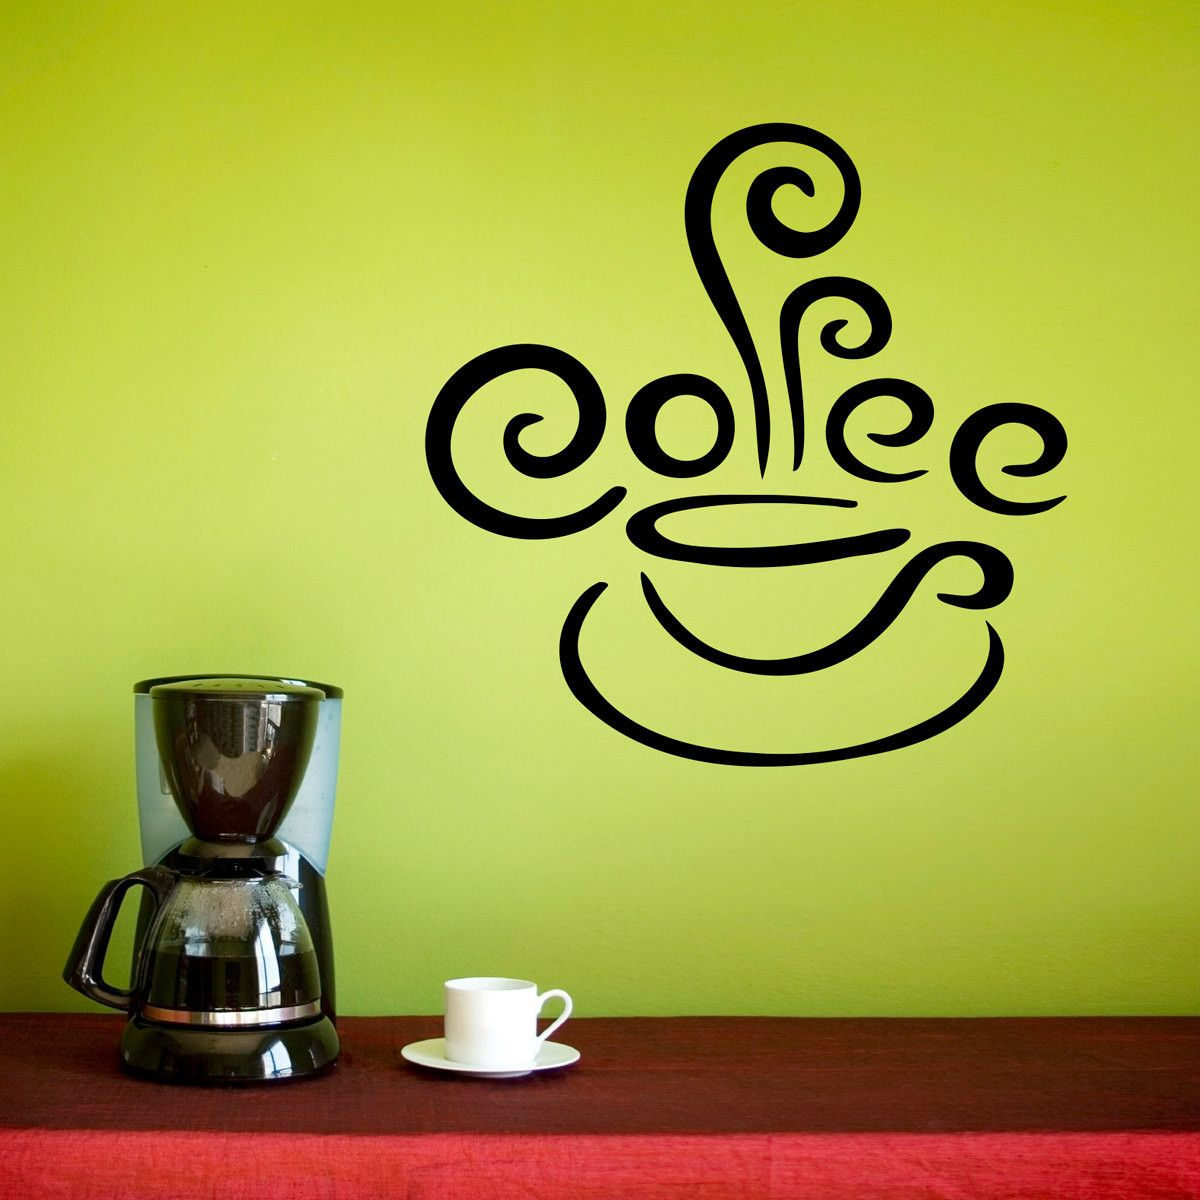 Coffee Cup With Steam Wall Decal Vinyls Colors And The